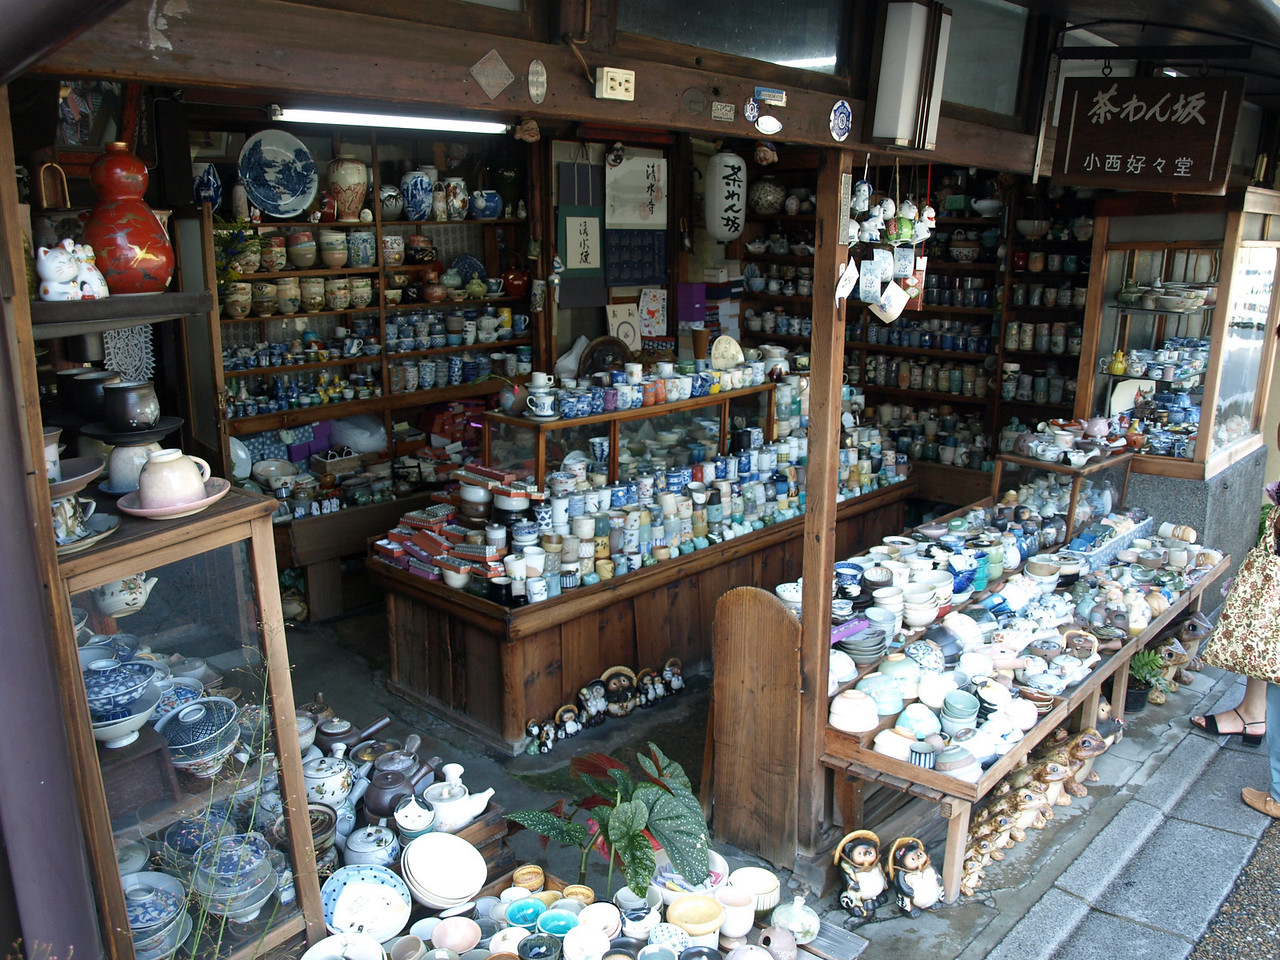 The shop was selling ceramics of various shapes and sizes